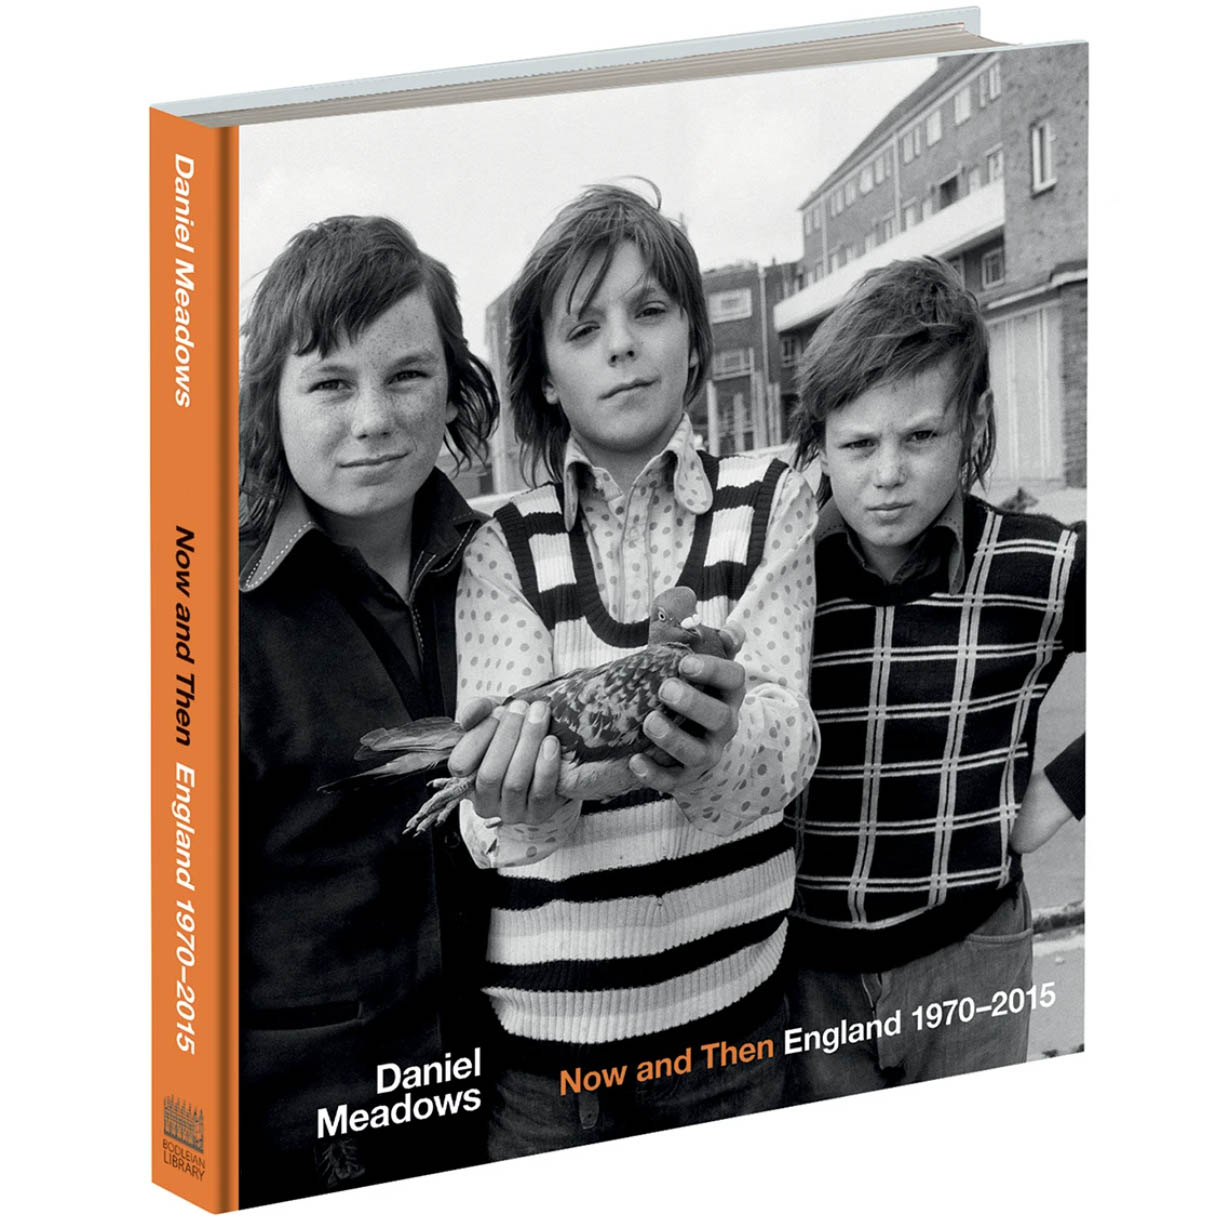 A book cover showing a black and white photograph of three young boys standing next to each other, the central boy holds a pigeon